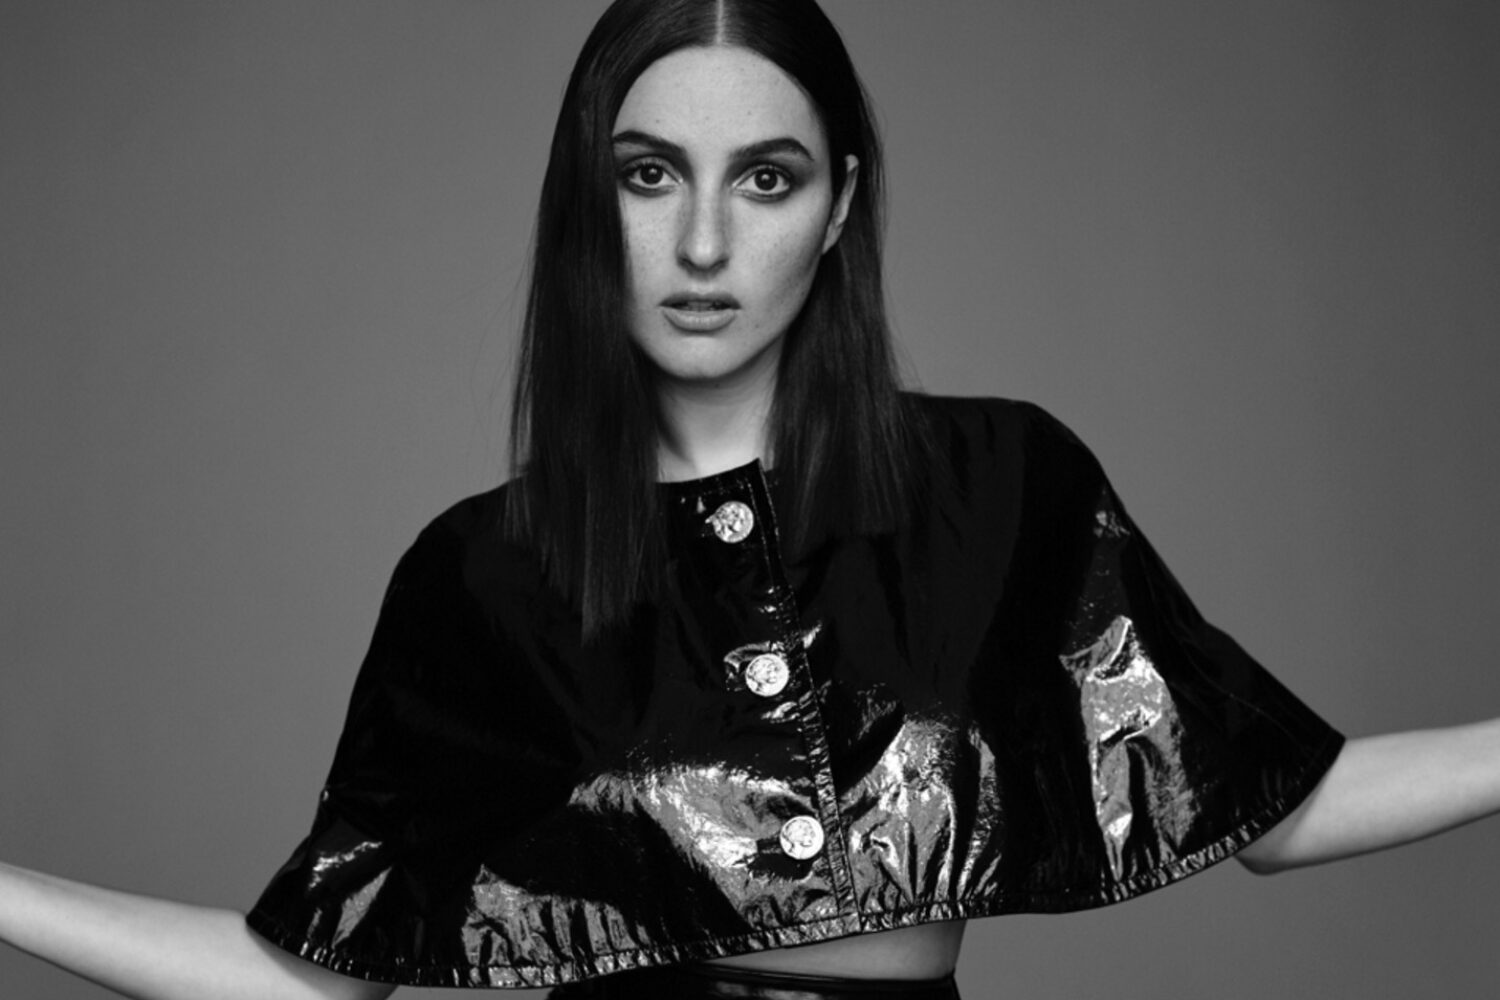 BANKS offers up new track 'Gemini Feed', confirms 'The Altar' details